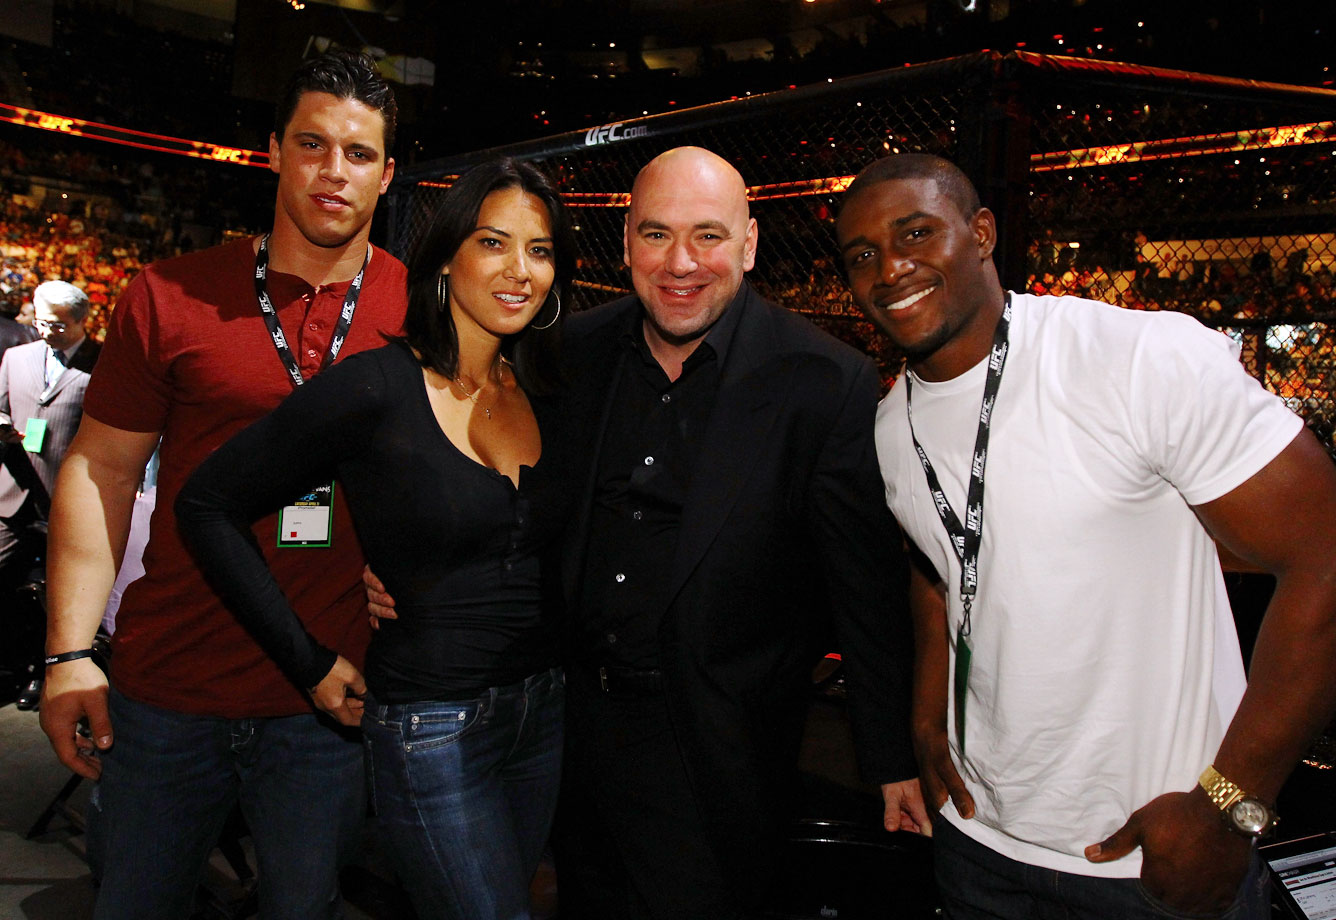 Olivia Munn, UFC President Dana White, and Reggie Bush attend UFC 145: Jones v Evans at Philips Arena on April 21, 2012 in Atlanta.